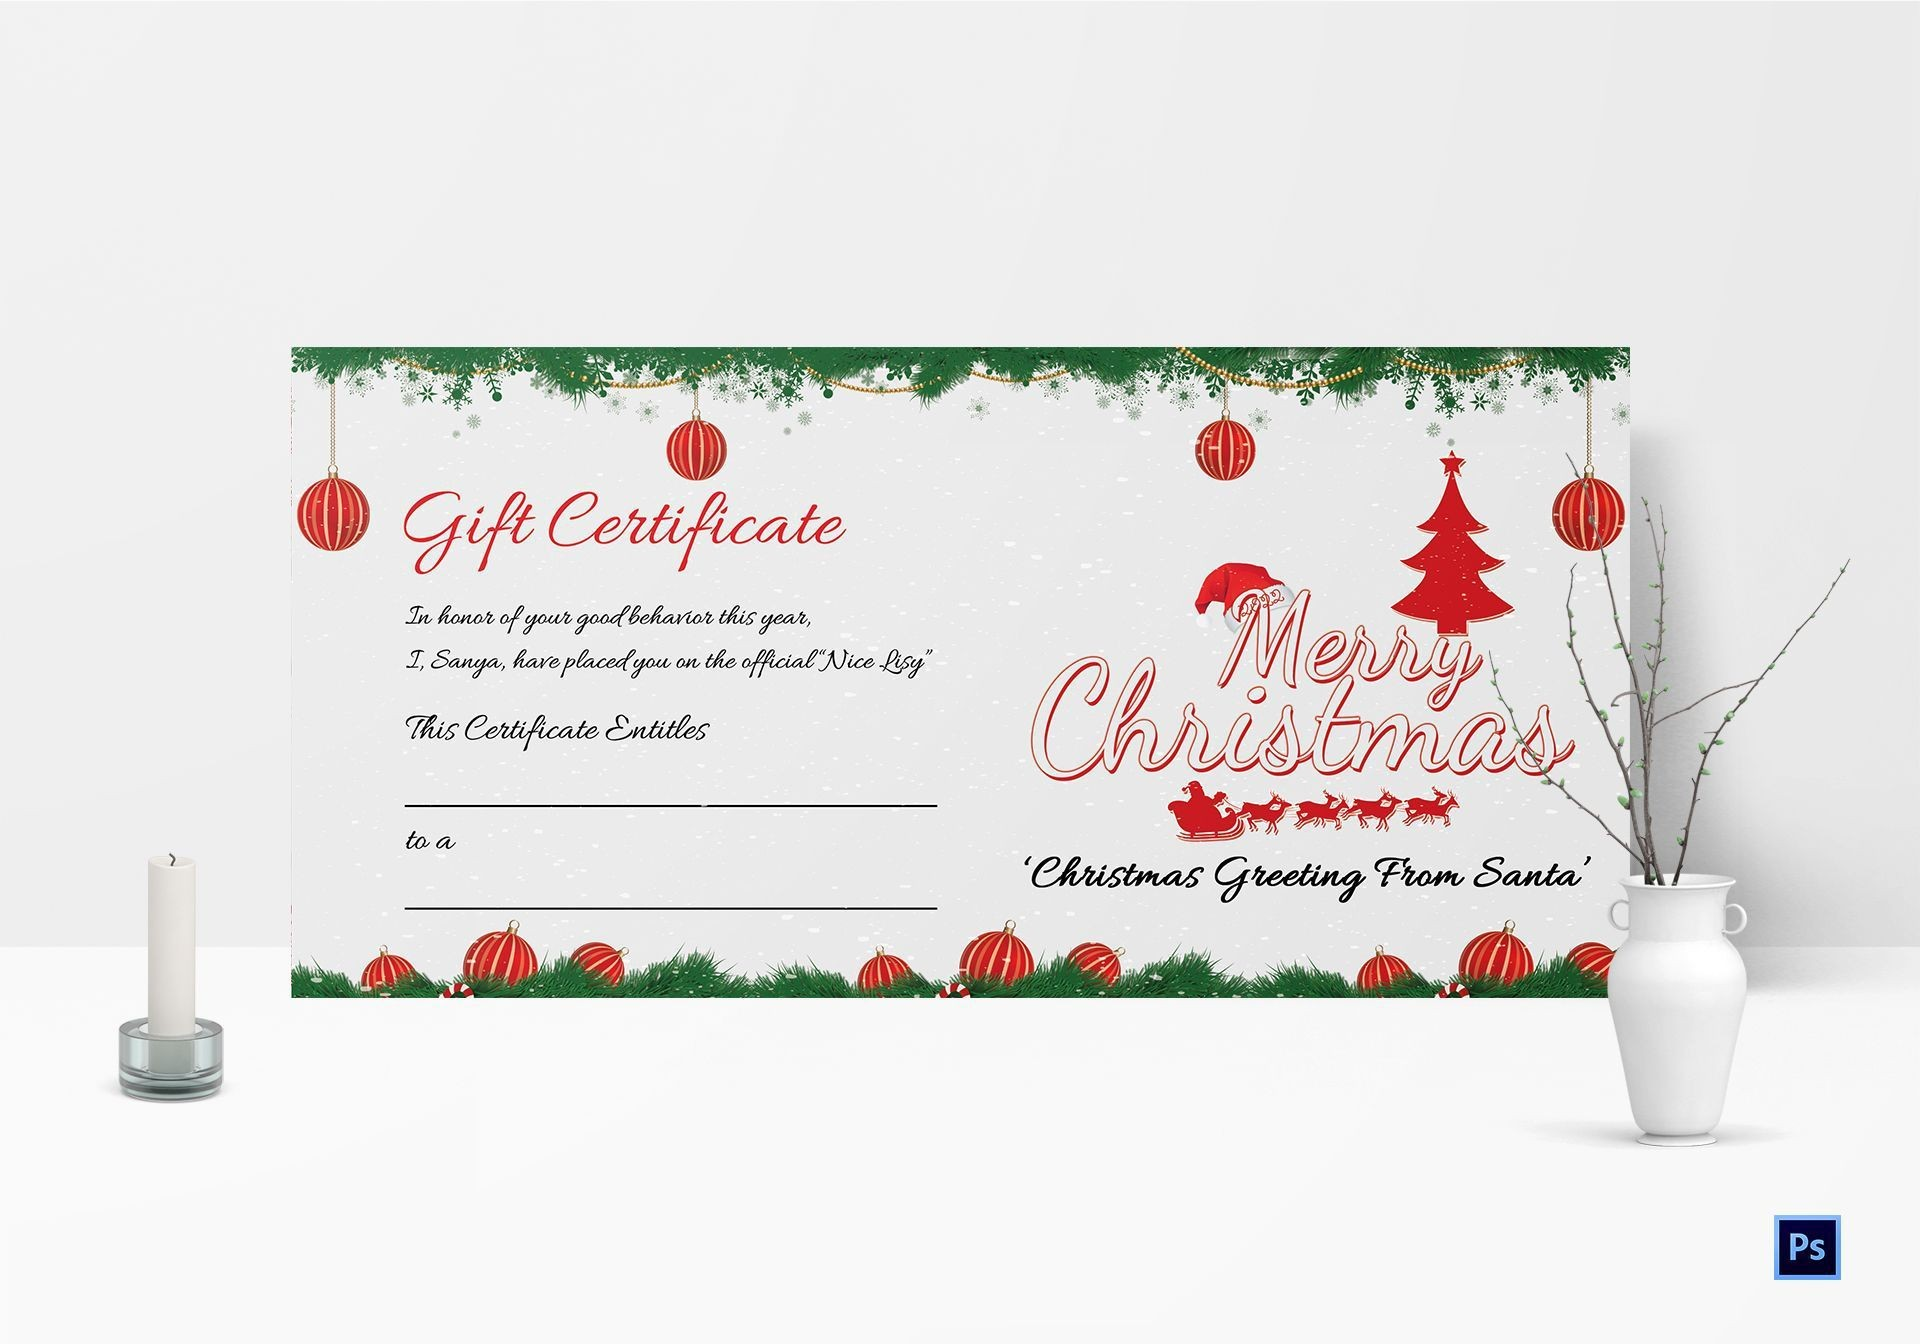 003 Formidable Template For Christma Gift Certificate Free Photo  Voucher Uk Editable Download Microsoft Word1920